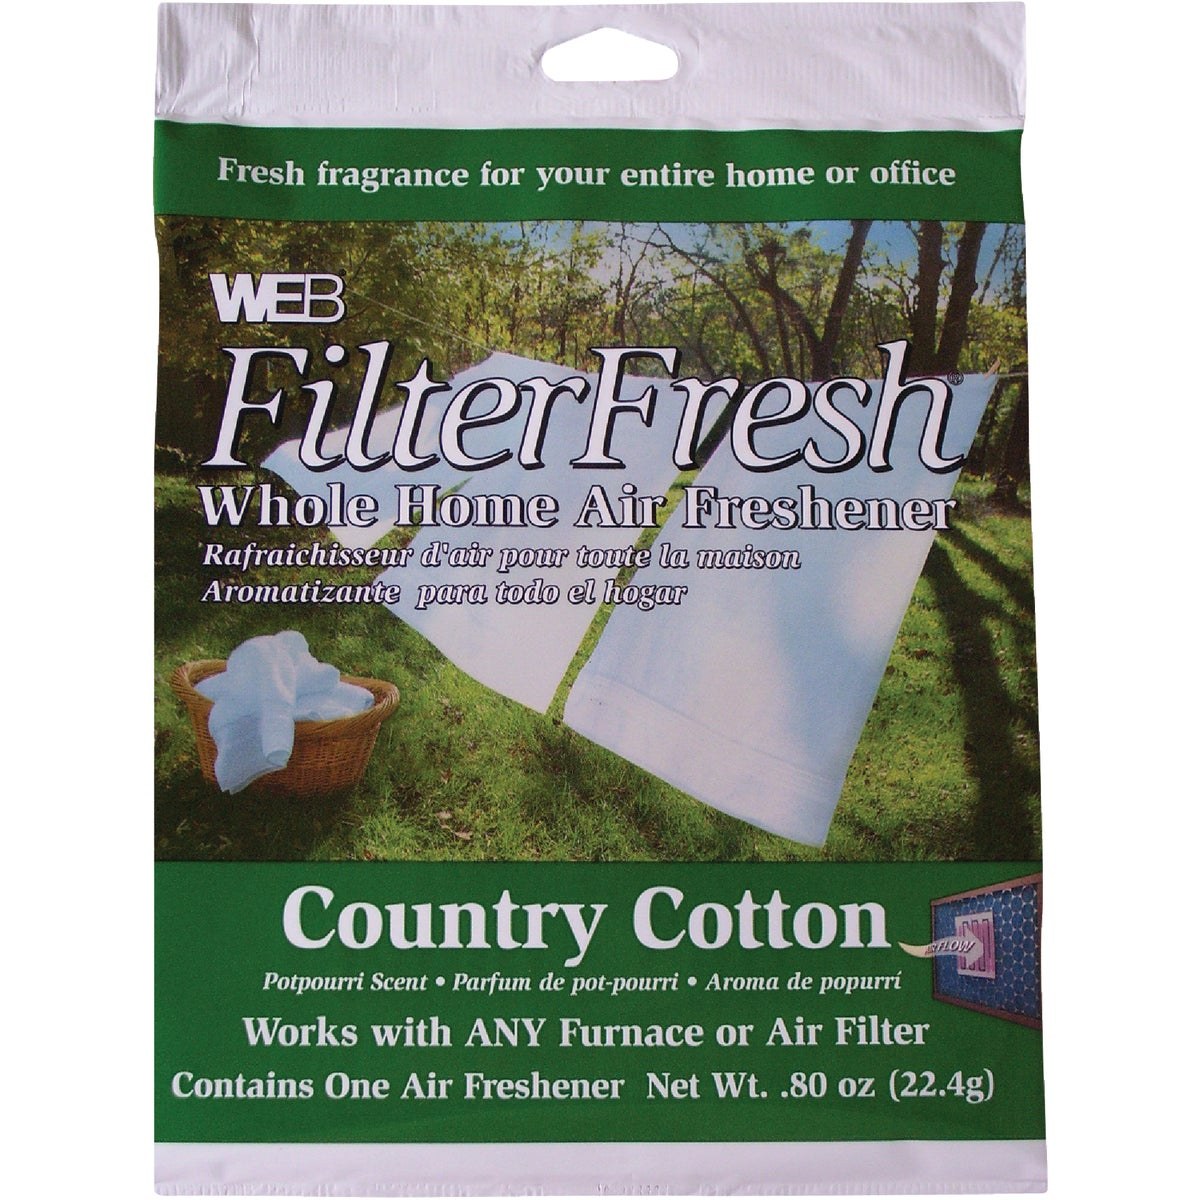 FILTER FRESH FRAGRANCE - WCOTTON by Web Products Inc